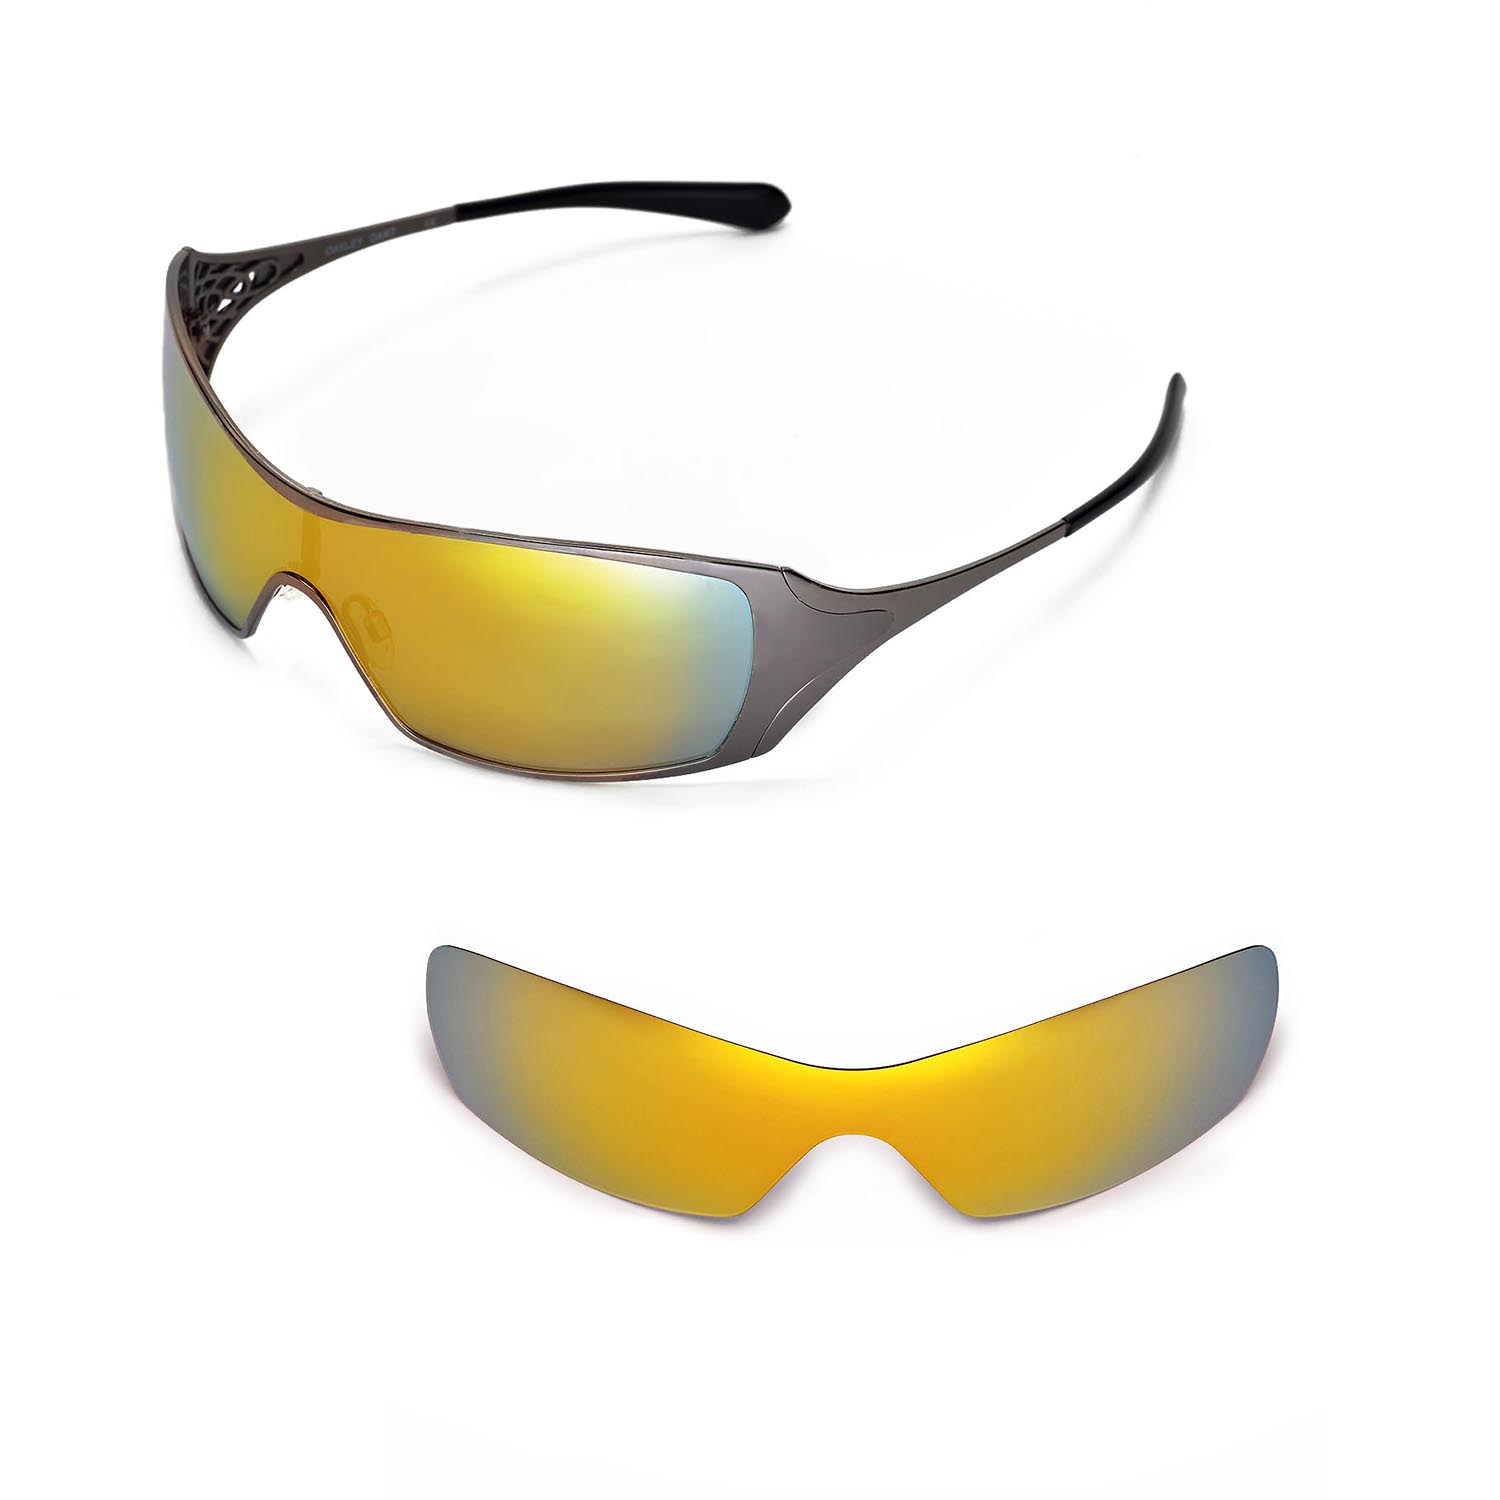 5688094961 Details about New Walleva Polarized 24K Gold Replacement Lenses For Oakley  Dart